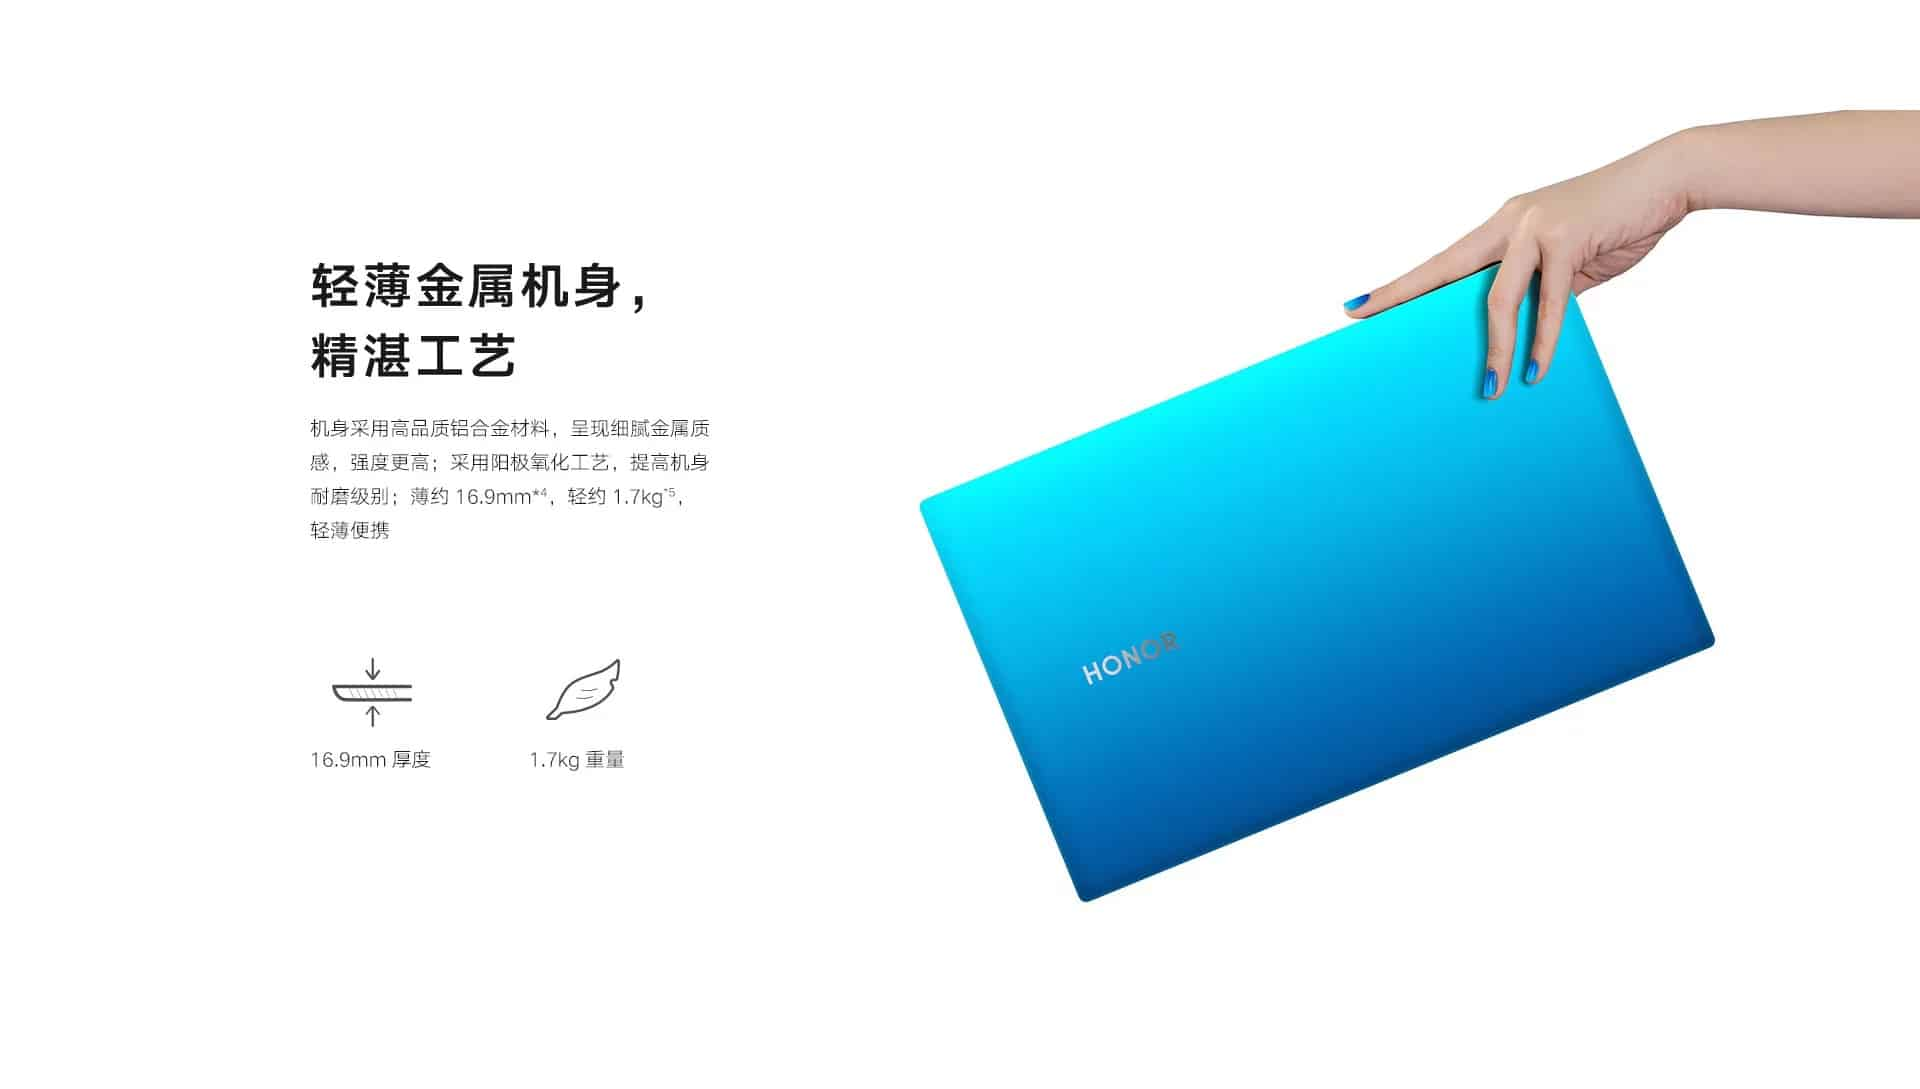 Honor MagicBook Pro está